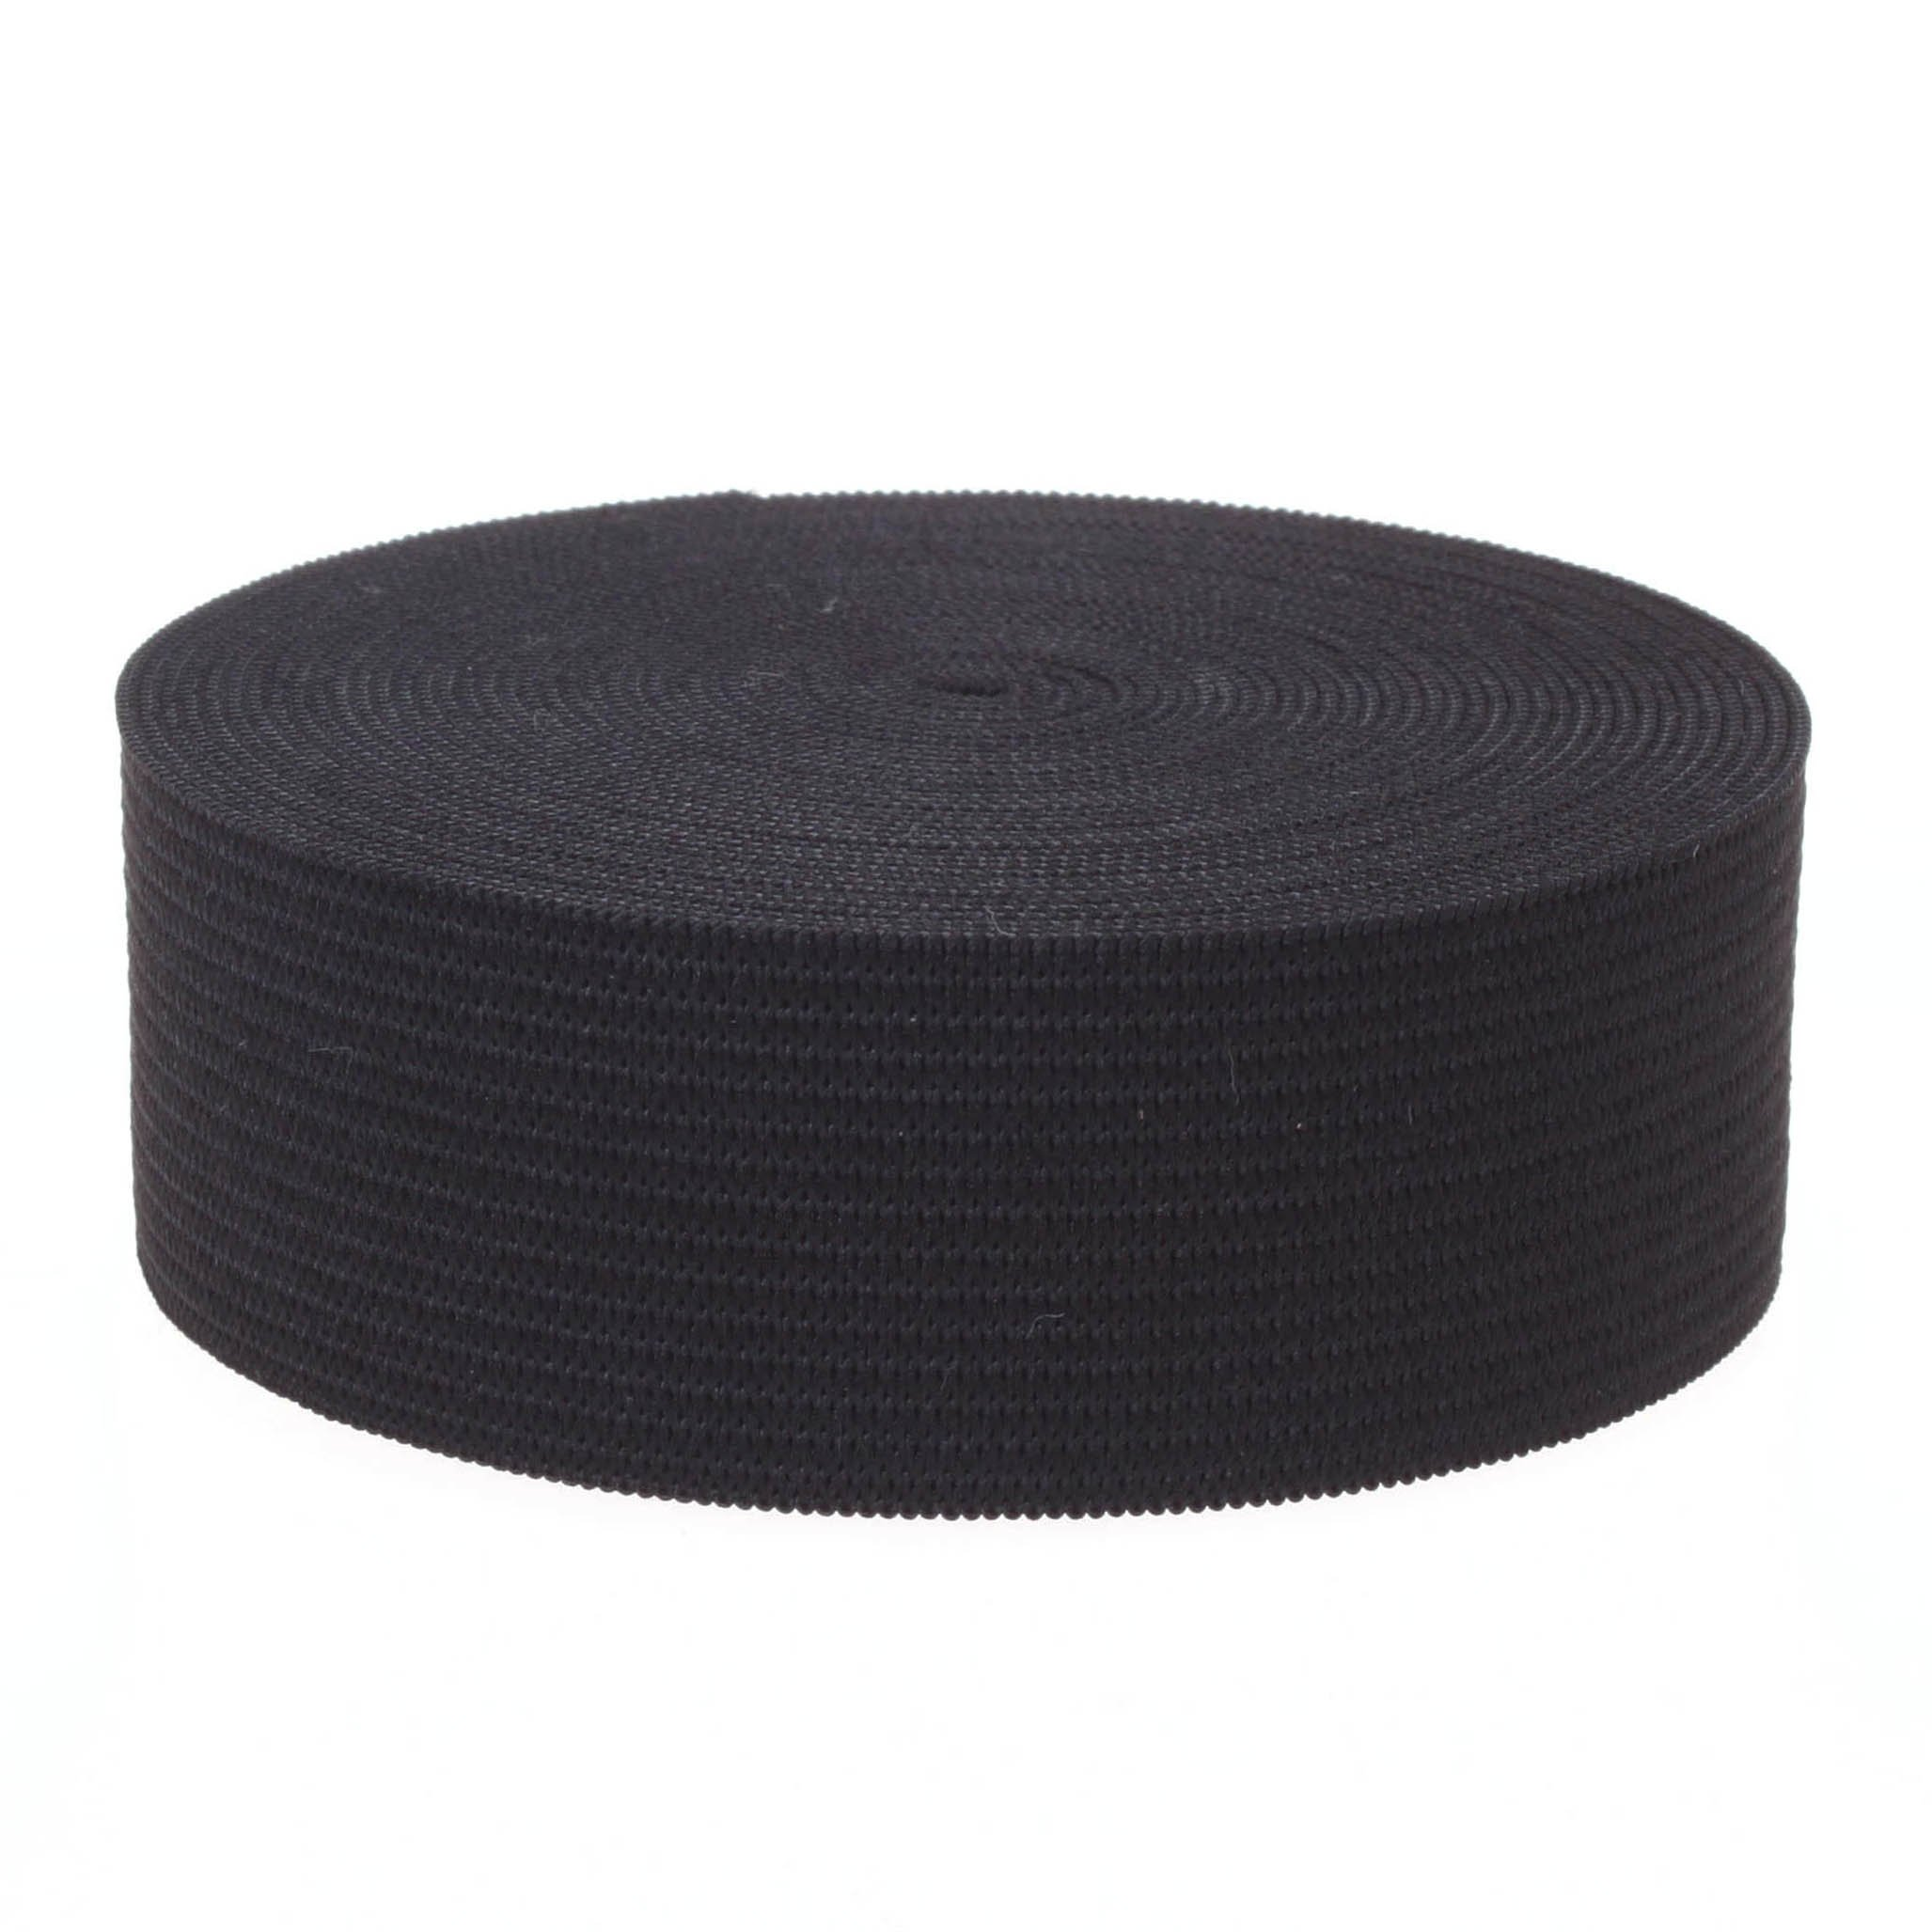 COTOWIN 4-inch Wide Black Knit Heavy Stretch High Elasticity Elastic Band 48-Yard by COTOWIN